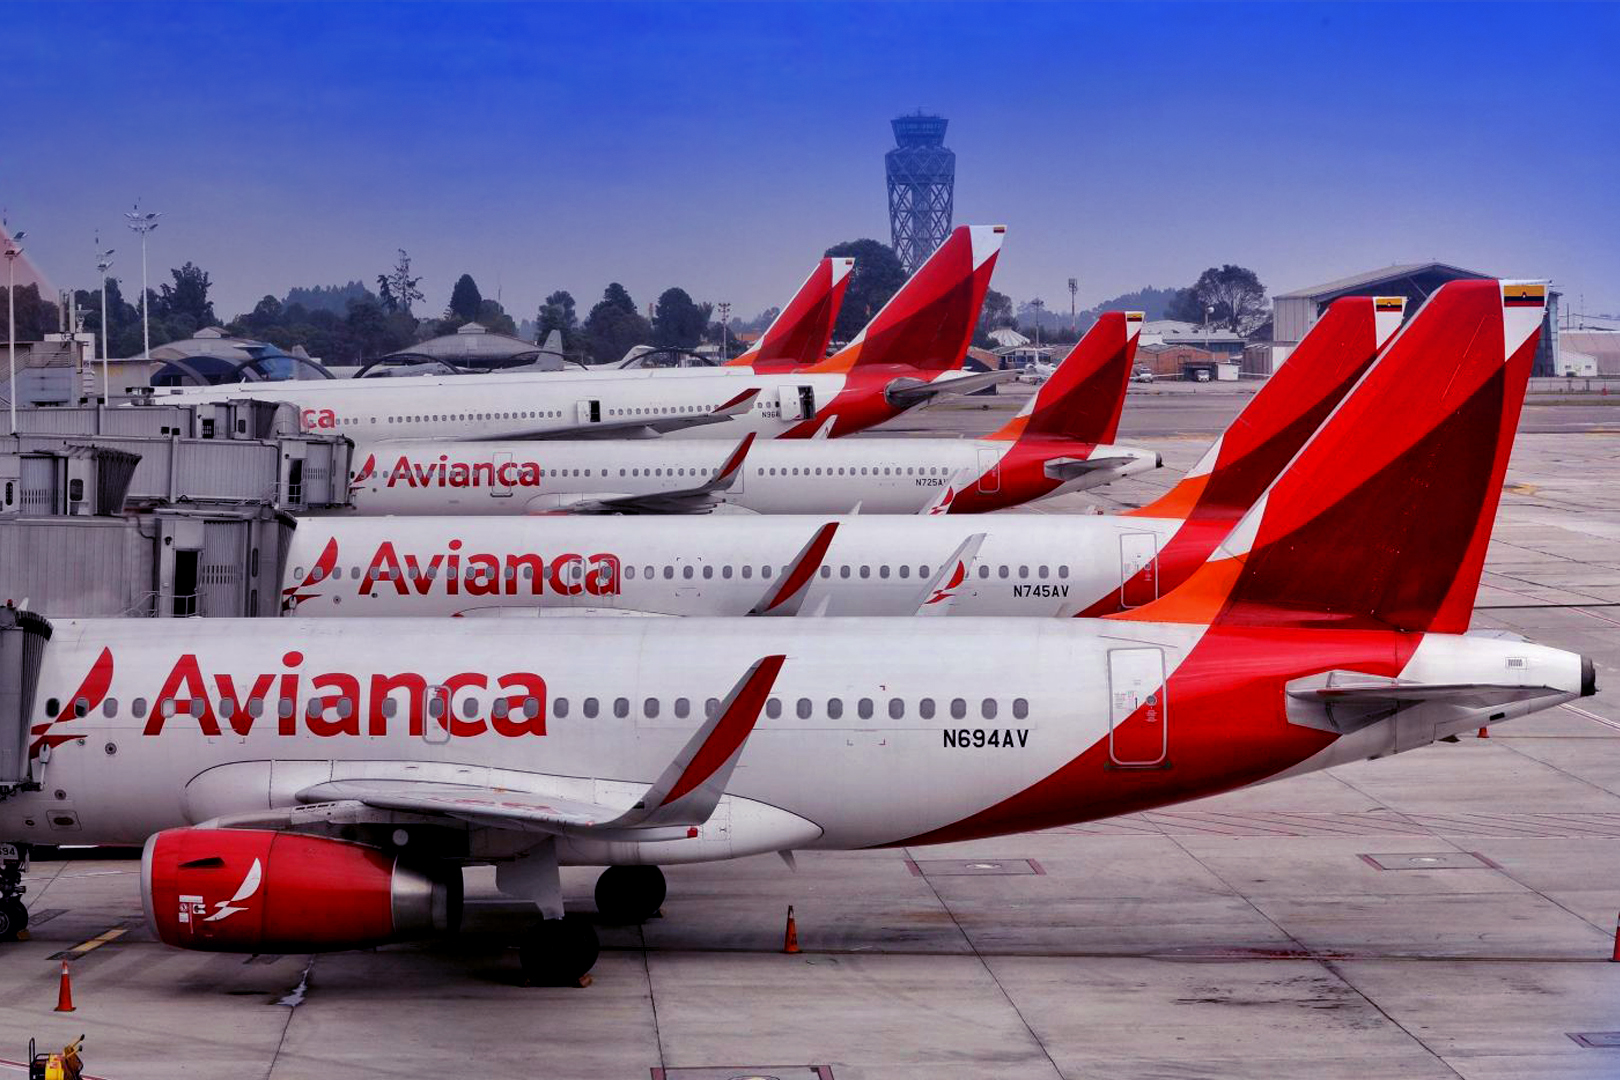 Avianca, the second oldest airline, driven to bankruptcy amid COVID-19